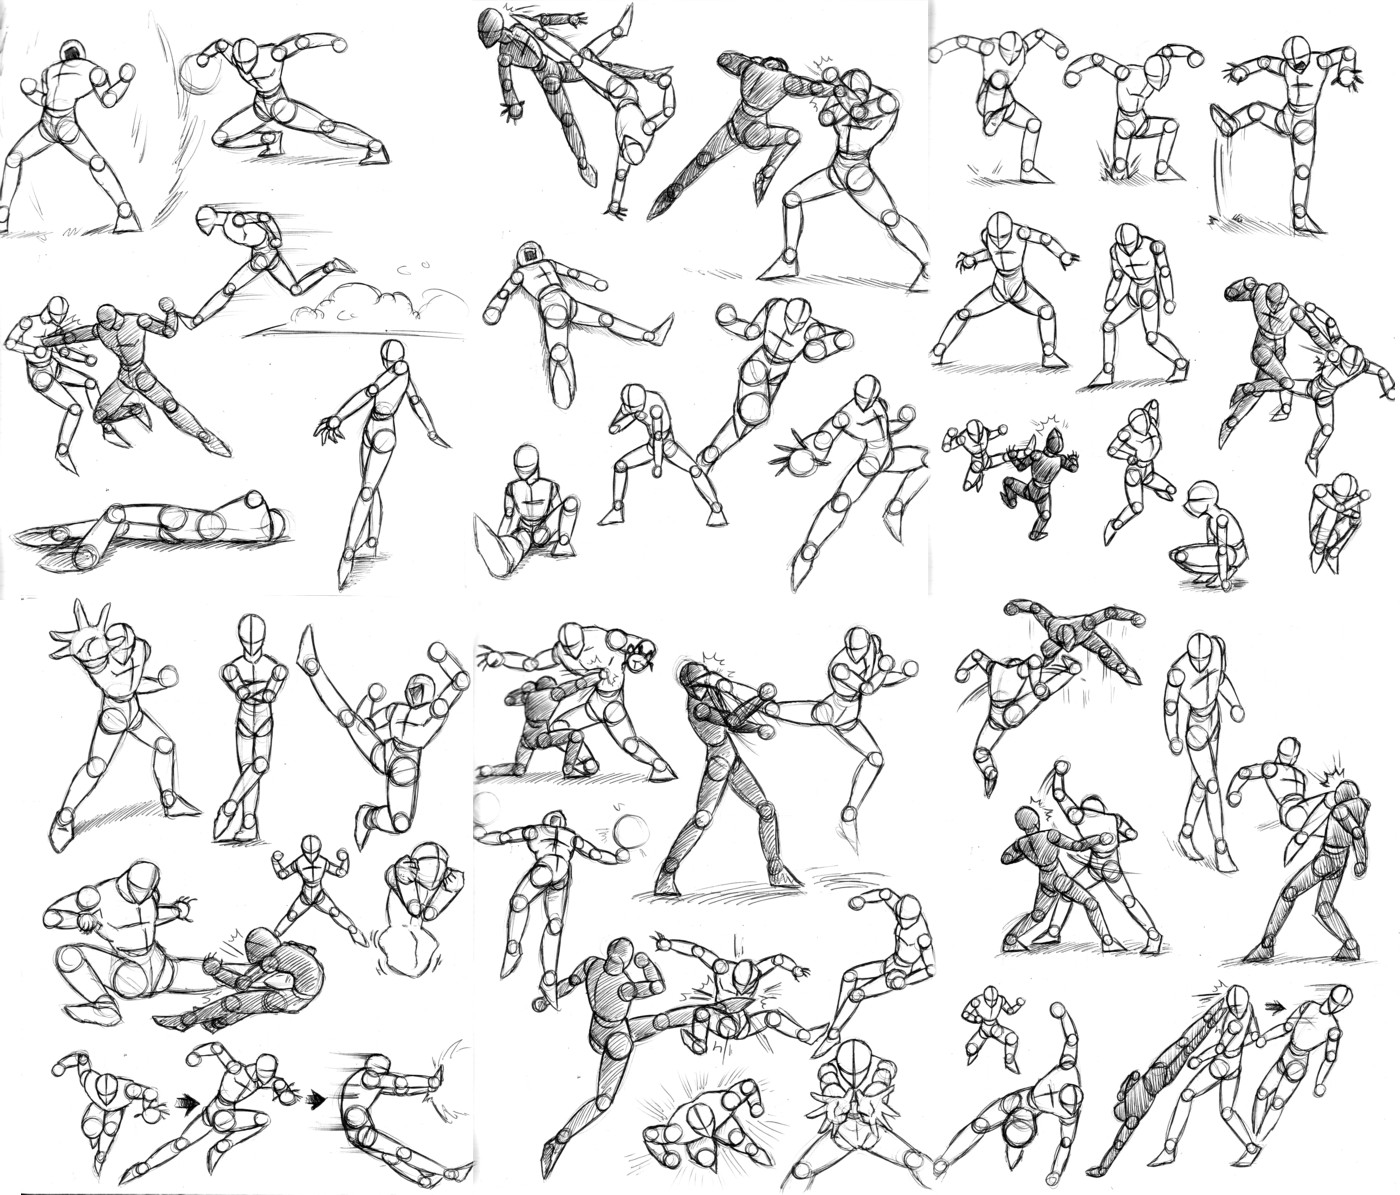 Art Pose Ideas on Pinterest | Action Poses, Pose Reference ...